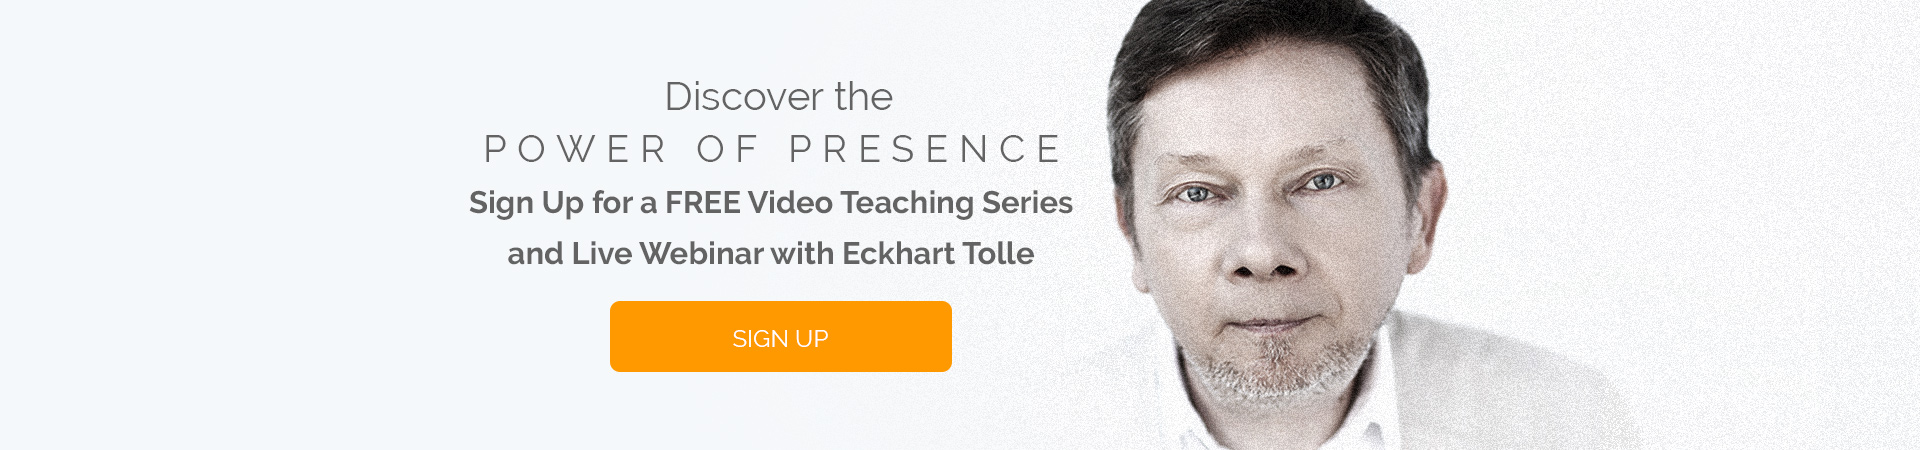 Power of Presence with Eckhart Tolle